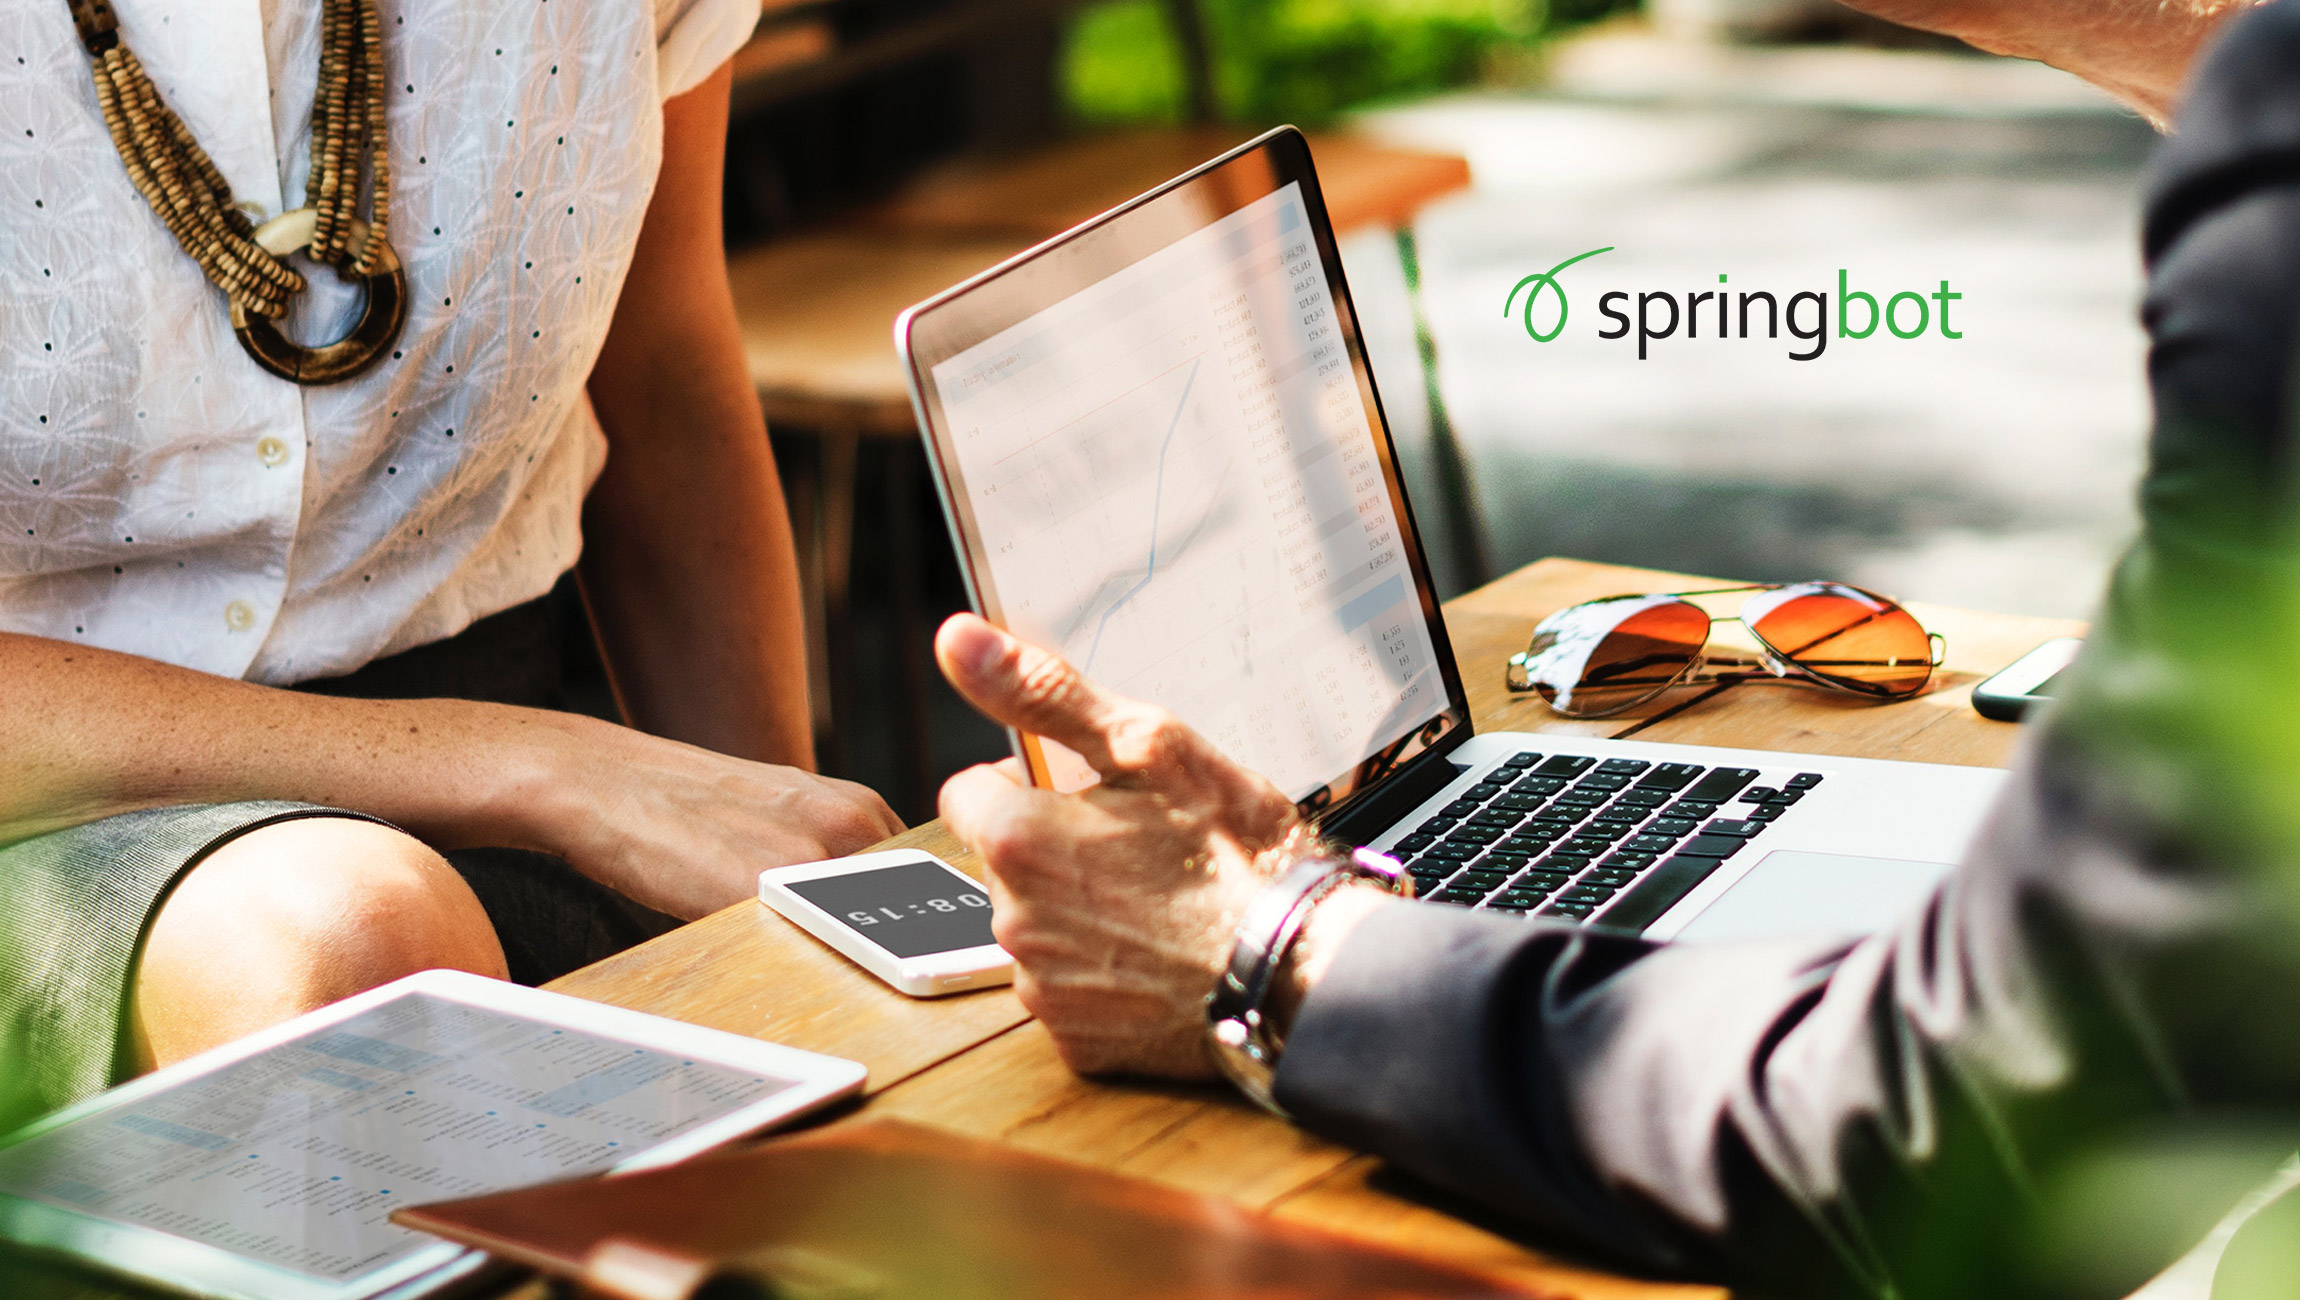 Springbot Hires Business and Technology Veteran as CFO